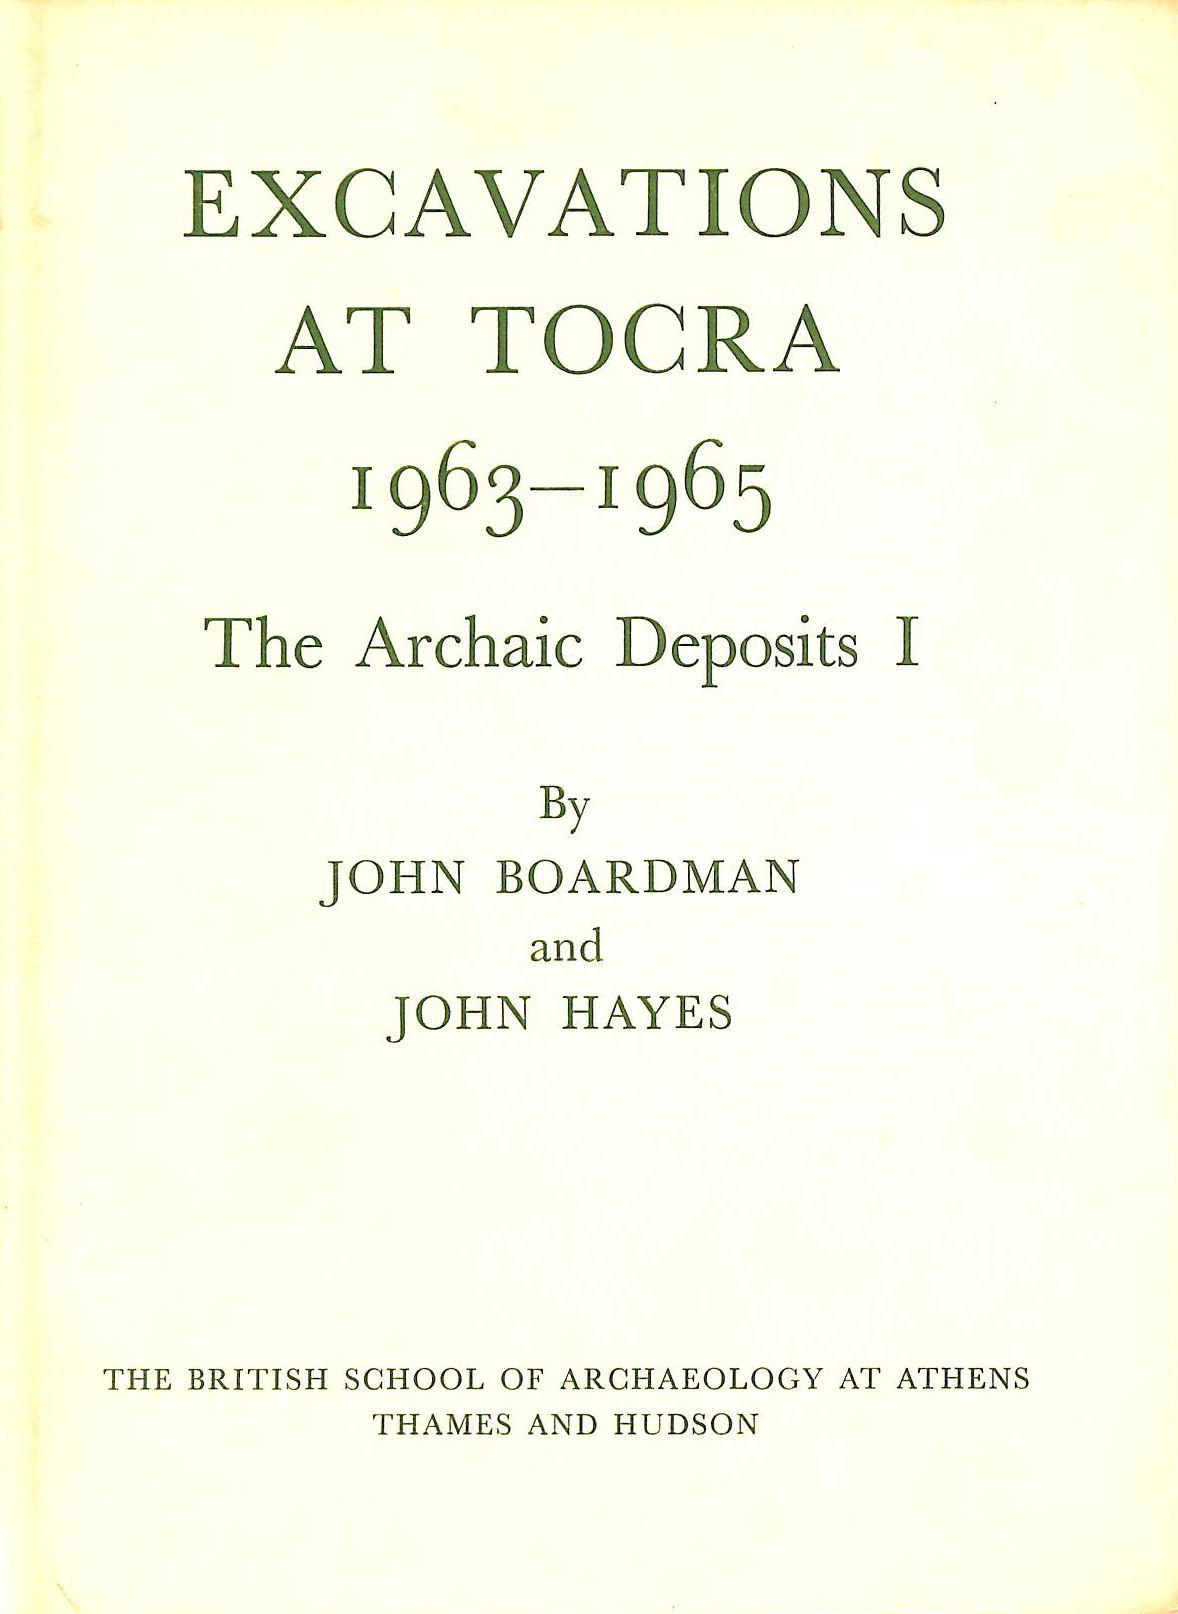 Image for Excavations at Tocra, 1963-65: Archaic Deposits v. 1 (British School of Archaeology , Athens, Publications)